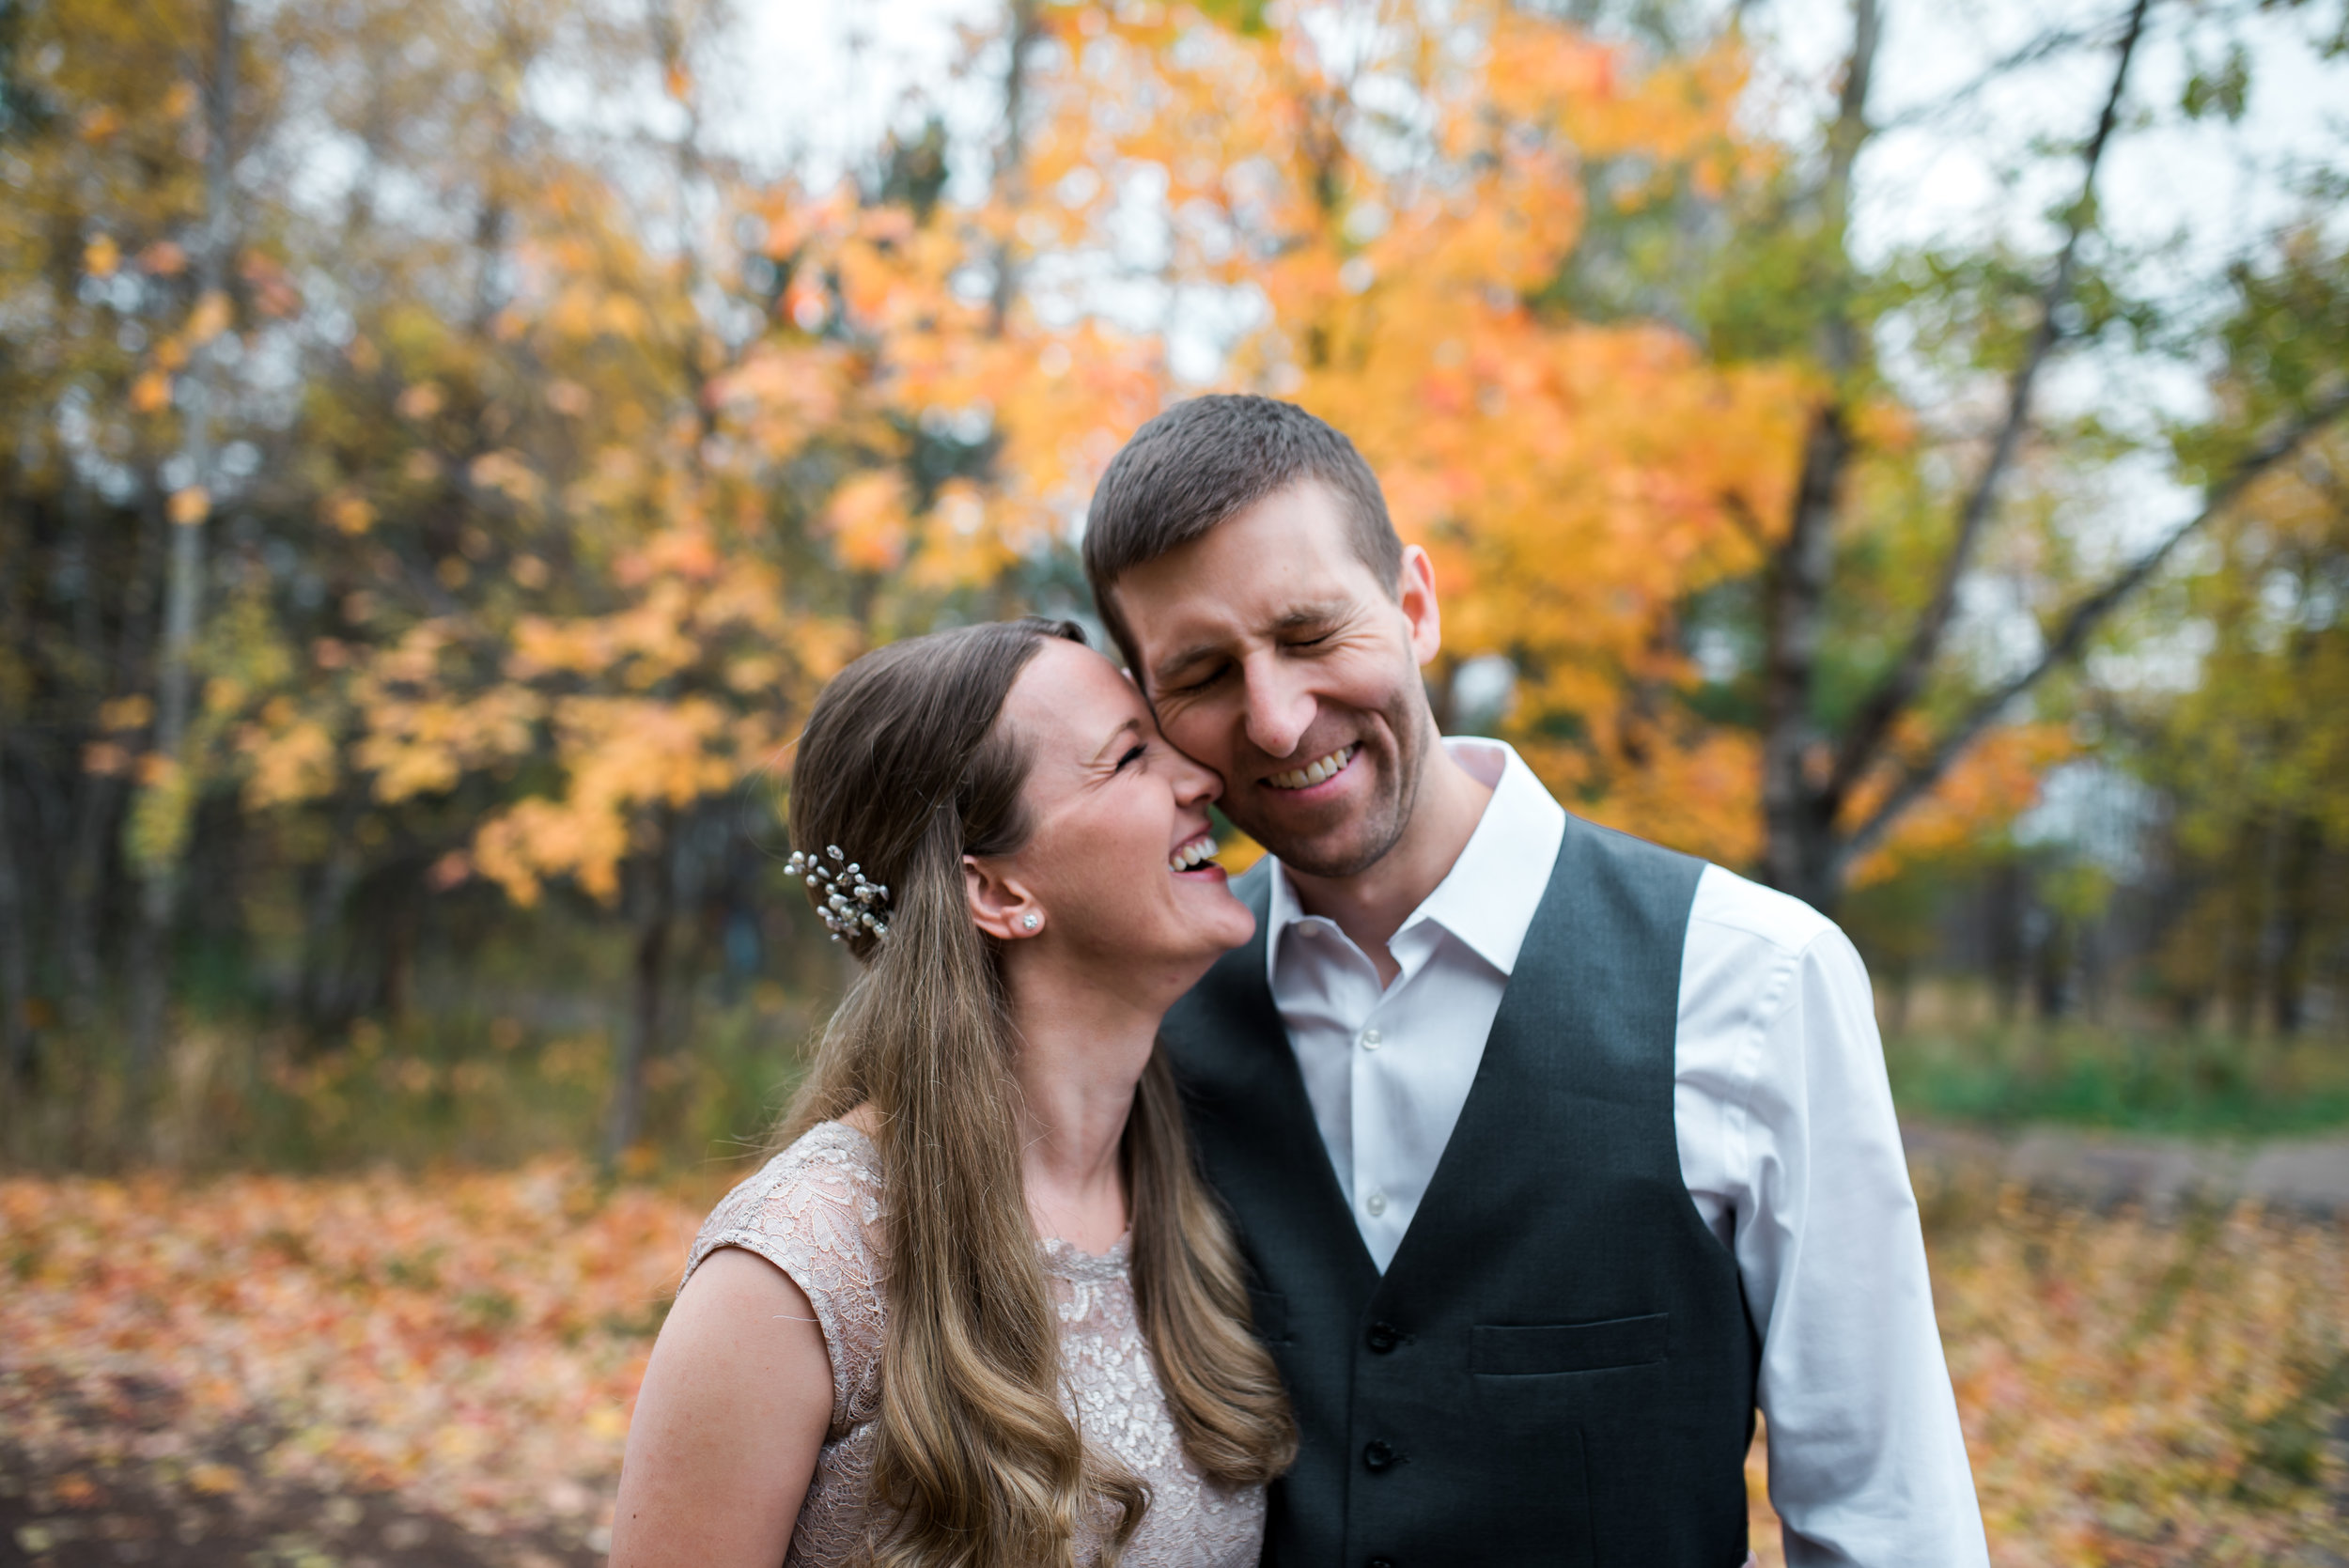 """Beth + Jim  """"We absolutely loved our experience with Shawna! She was professional, kind & got great shots of our family. A true gem!"""""""